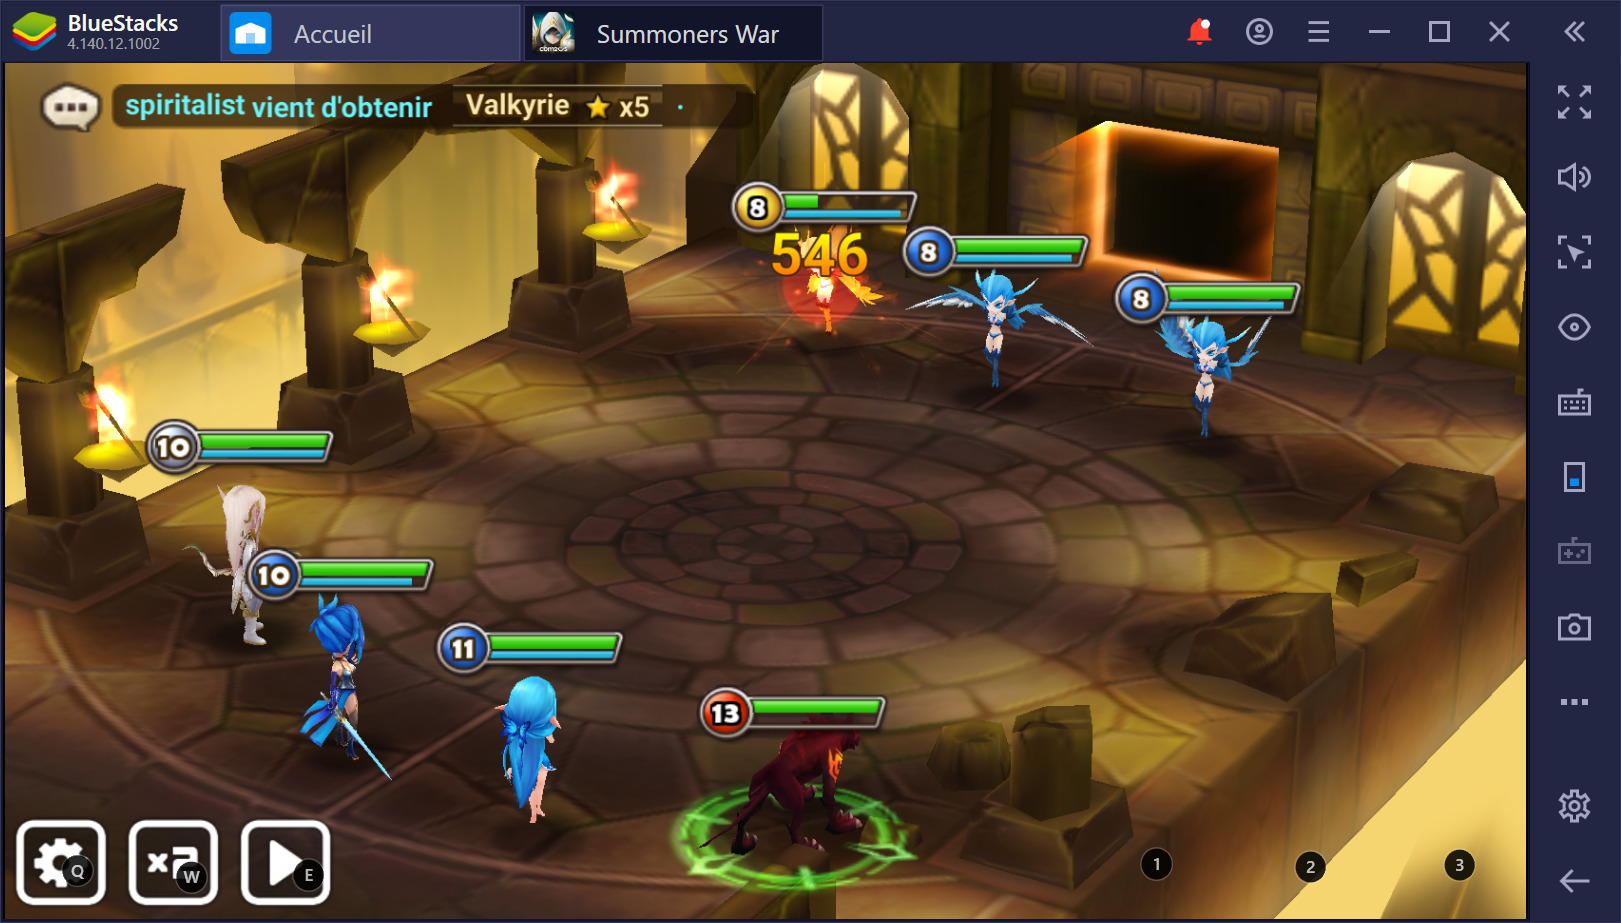 Summoners War sur PC : Comment y jouer avec BlueStacks